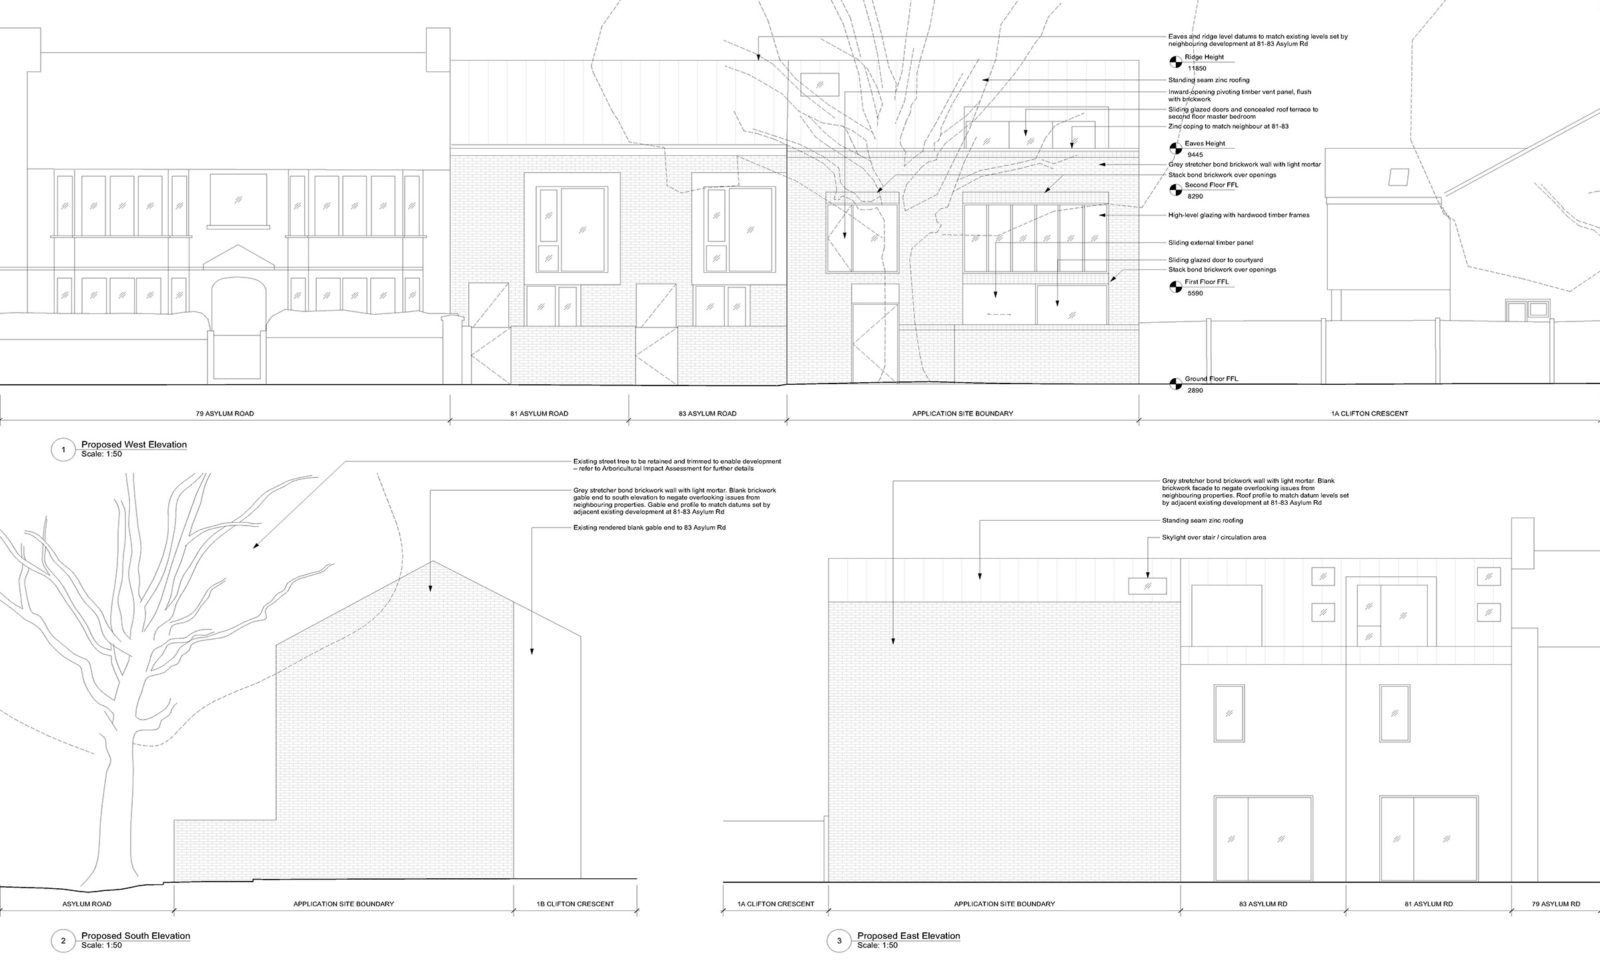 Plans for the proposed development by Carl Turner Architects. Via The Modern House